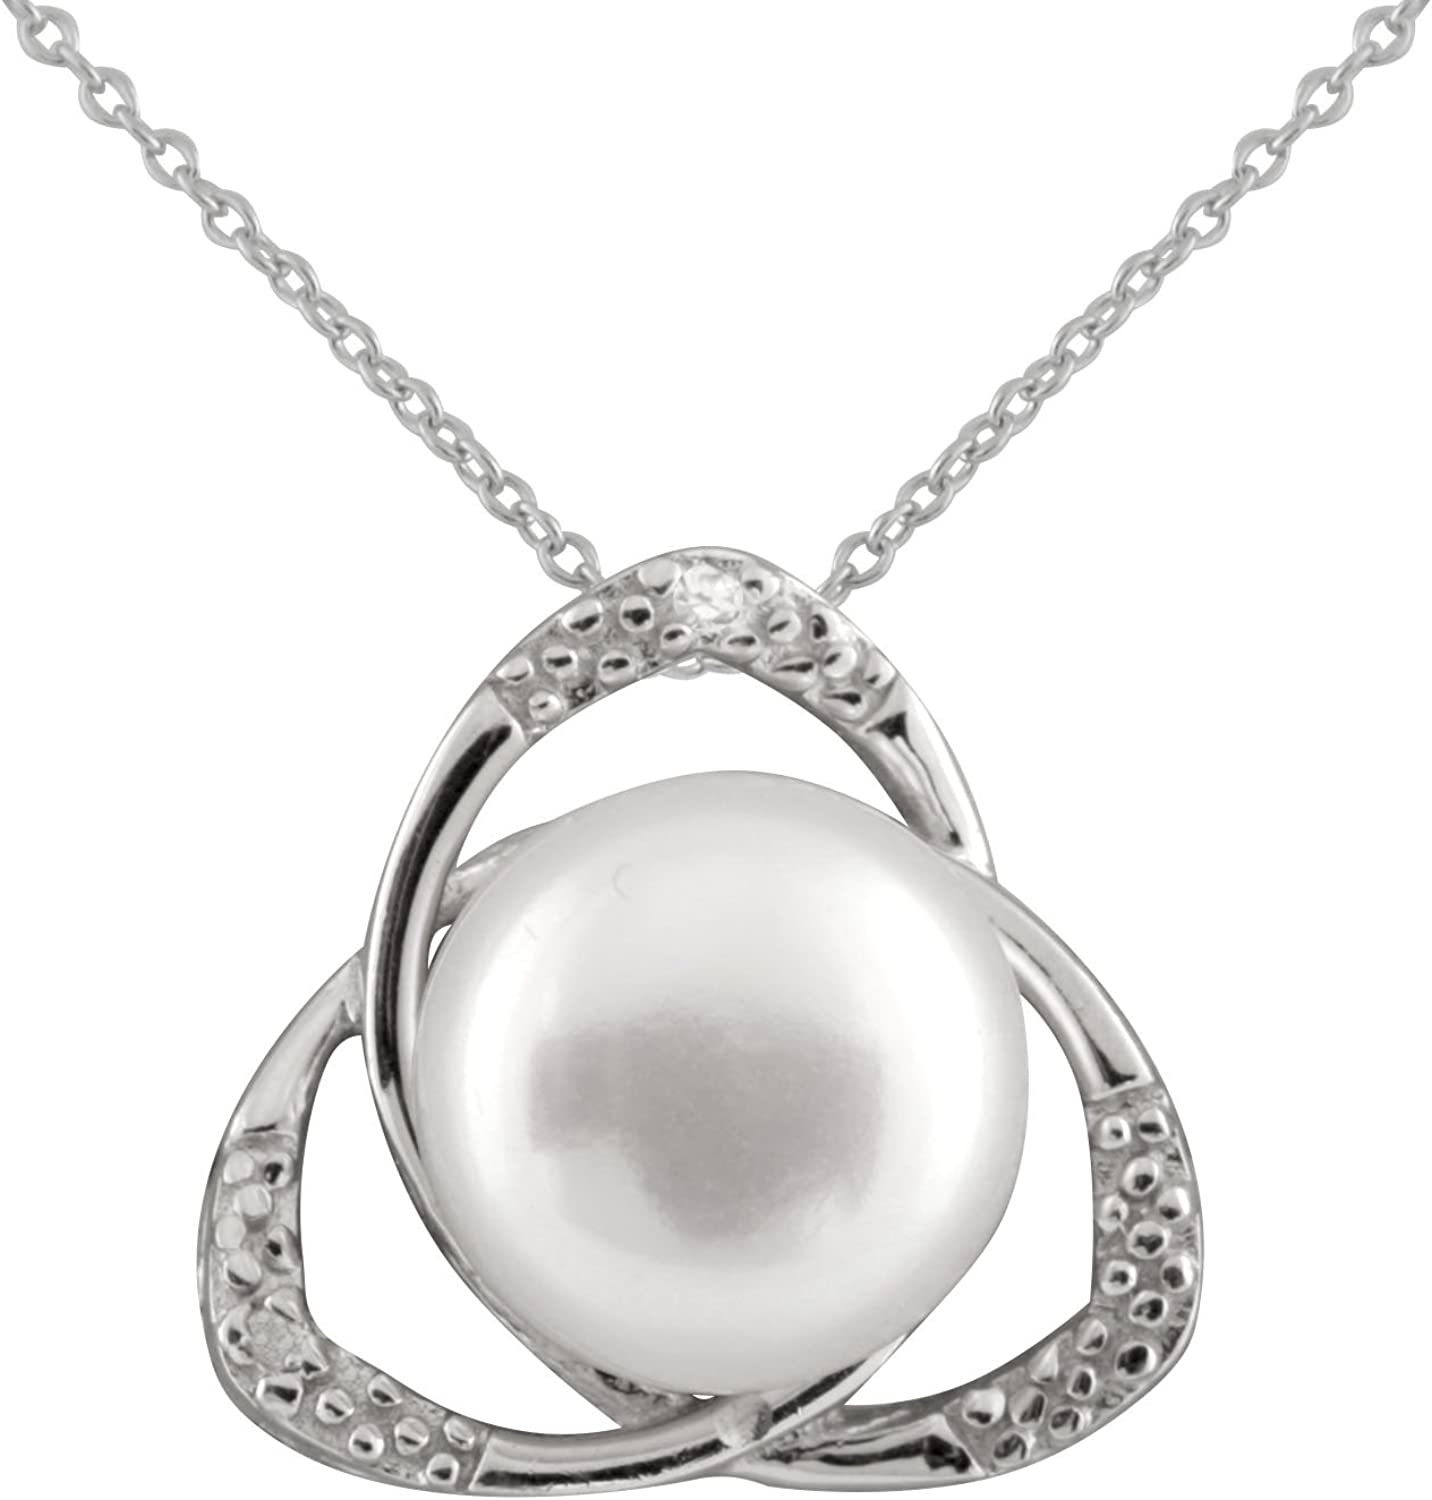 8-8.5mm Freshwater Cultured Pearls Rhodium-plated 925 Sterling Silver 17 Necklace and Earrings Set Handpicked AAA